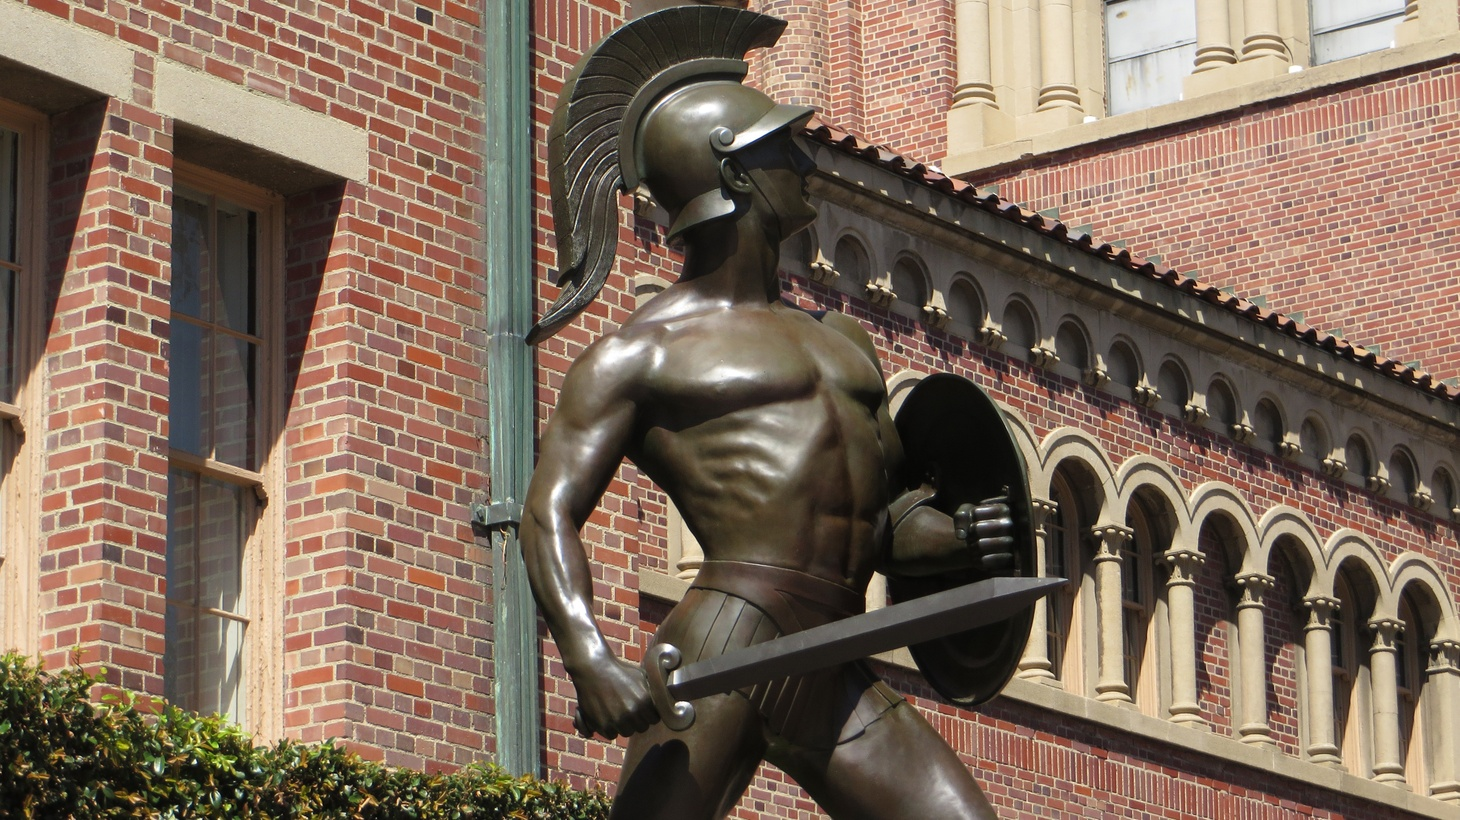 Tommy Trojan, officially known as the Trojan Shrine, is one of the most recognizable figures of school pride at the University of Southern California.